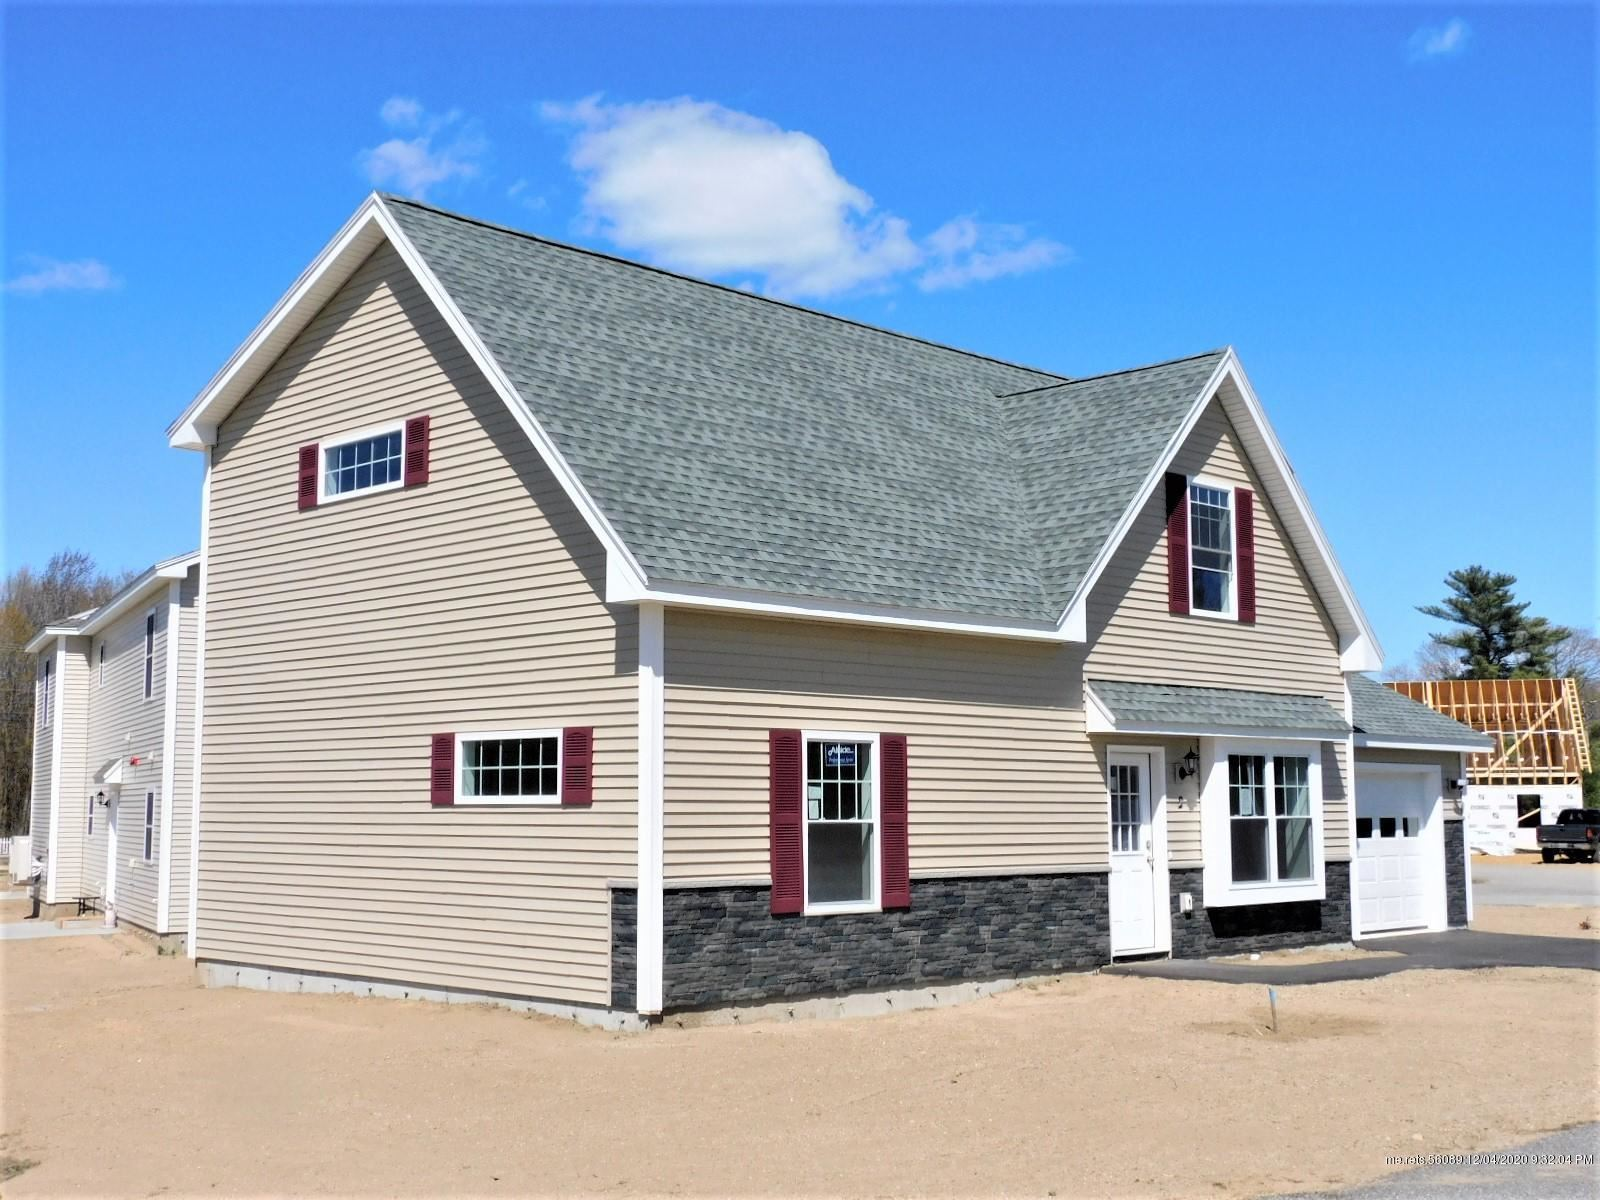 Photo of 2 Boulder Lane #2, Sanford, ME 04073 (MLS # 1375810)